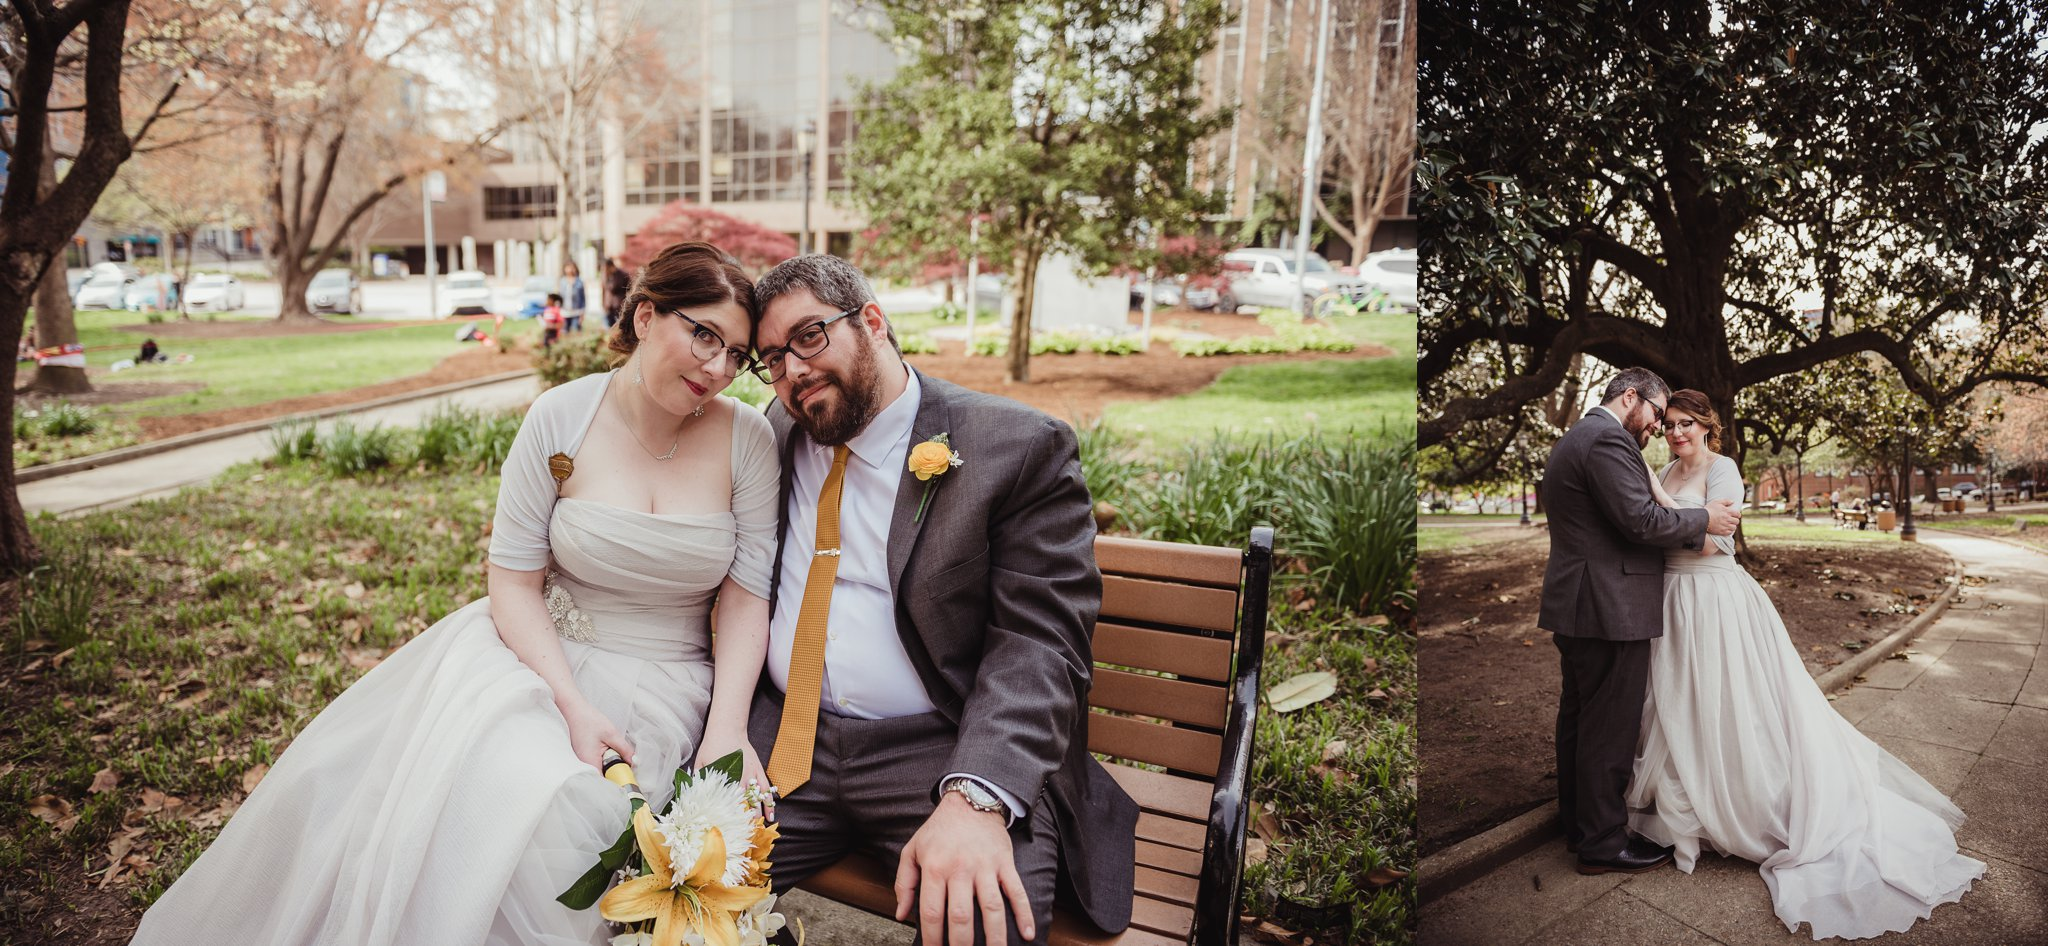 The bride and groom take a moment to be together in the park before their wedding day in downtown Raleigh, picture by Rose Trail Images.